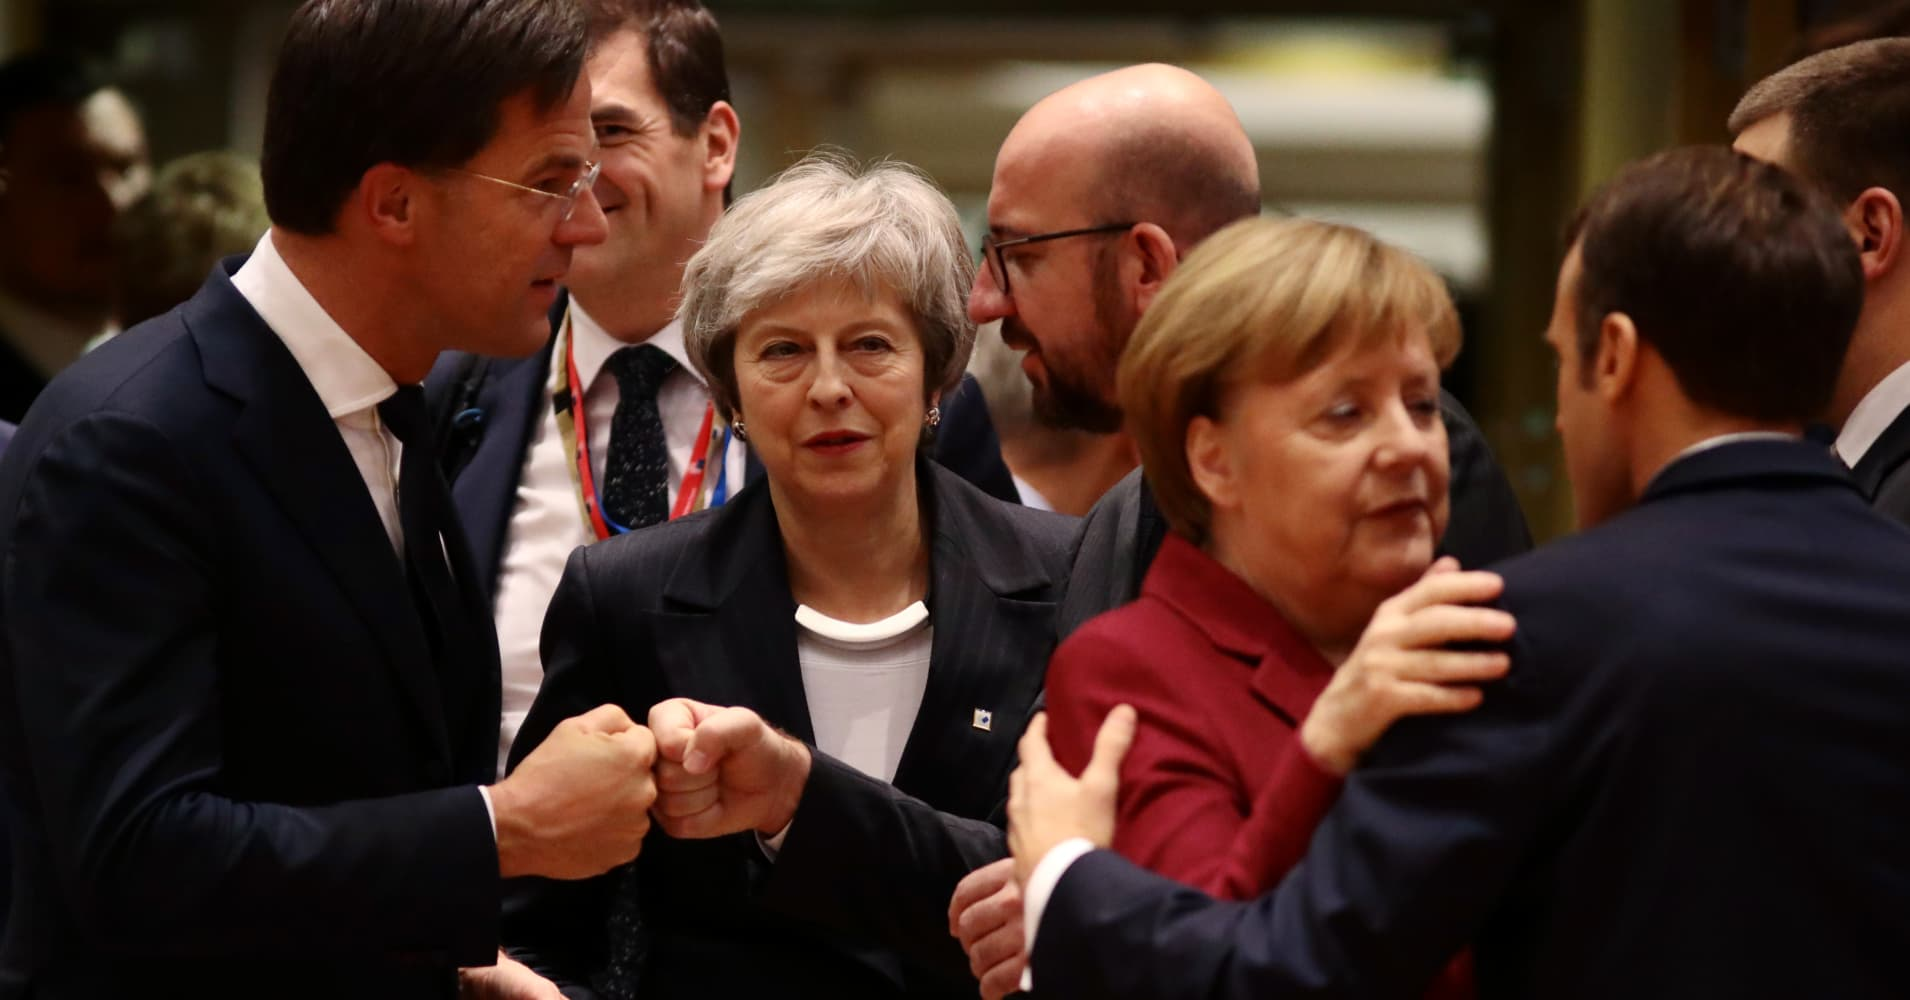 Theresa May seeks help from Merkel and Macron ahead of critical Brexit summit